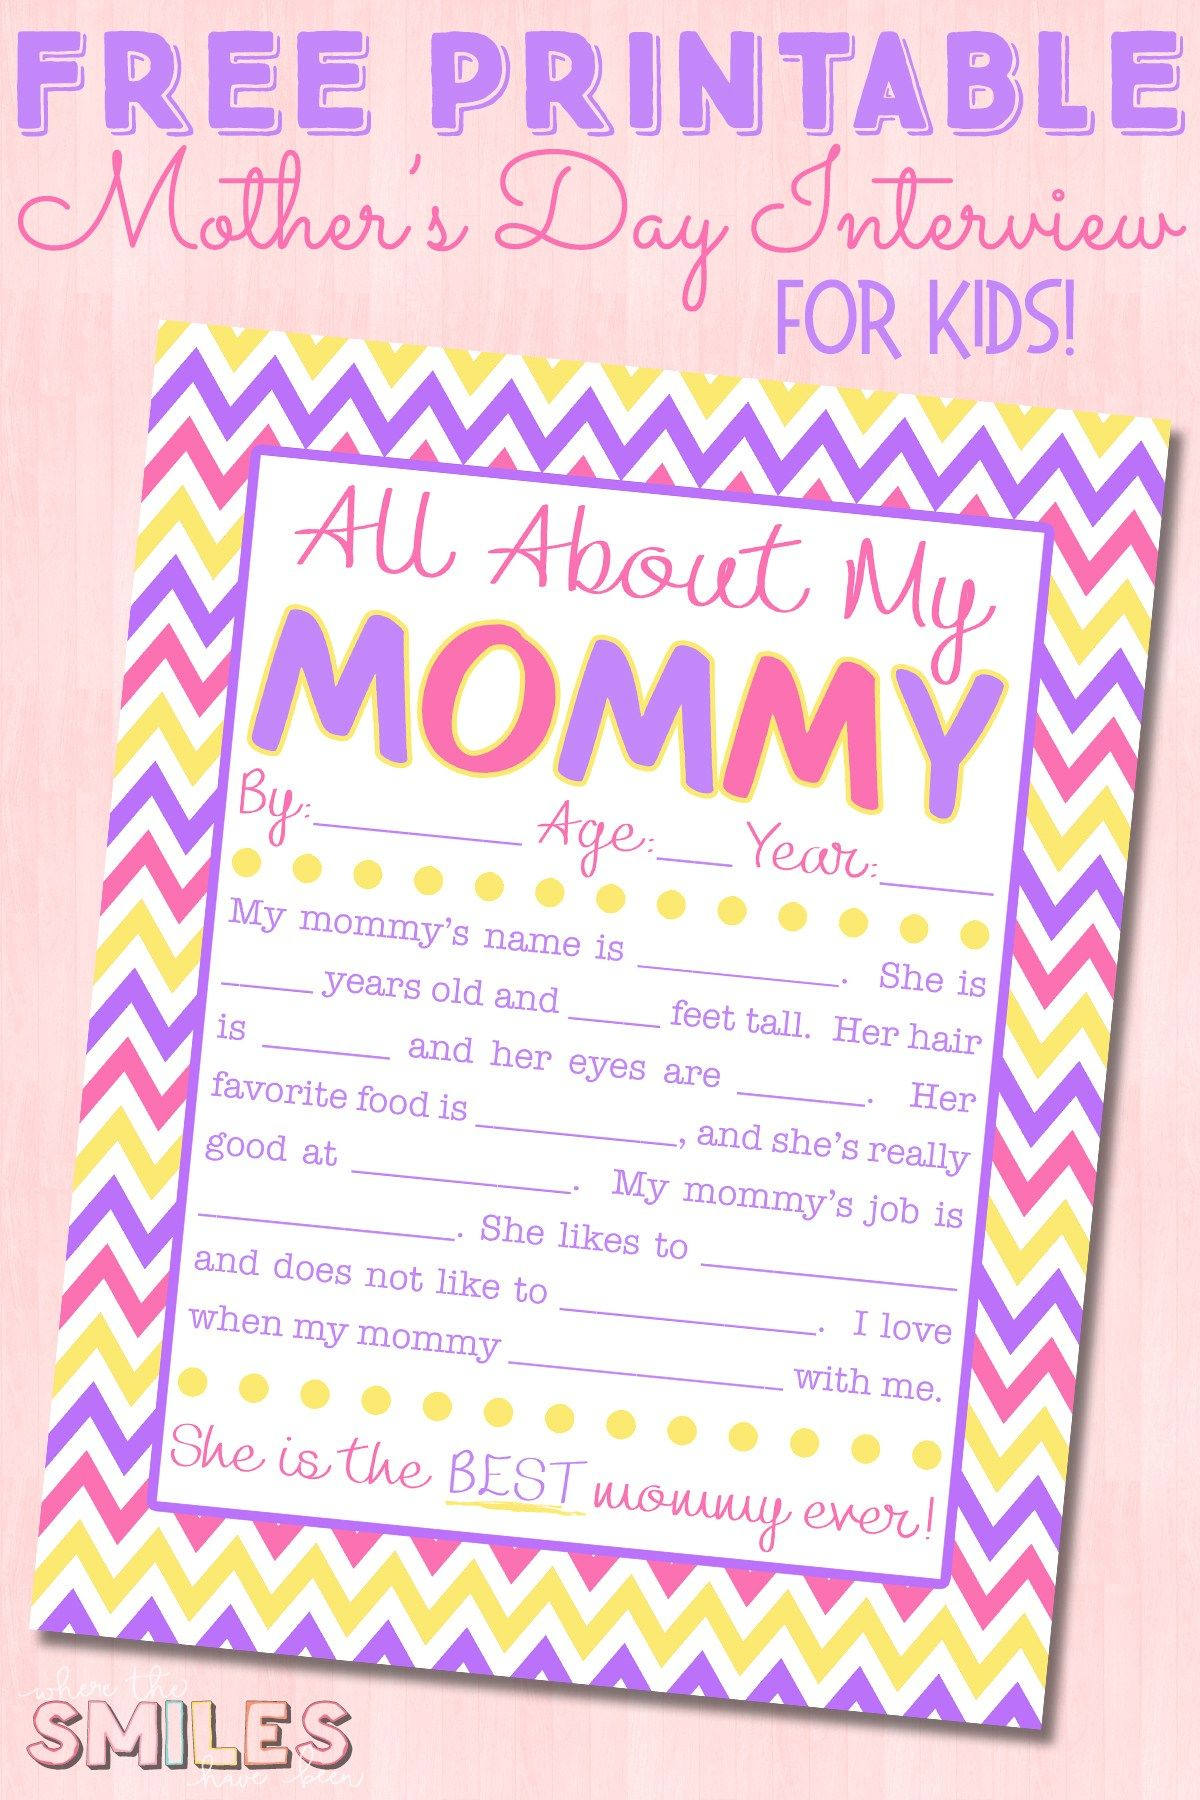 All About My Mommy Interview With Free Printable